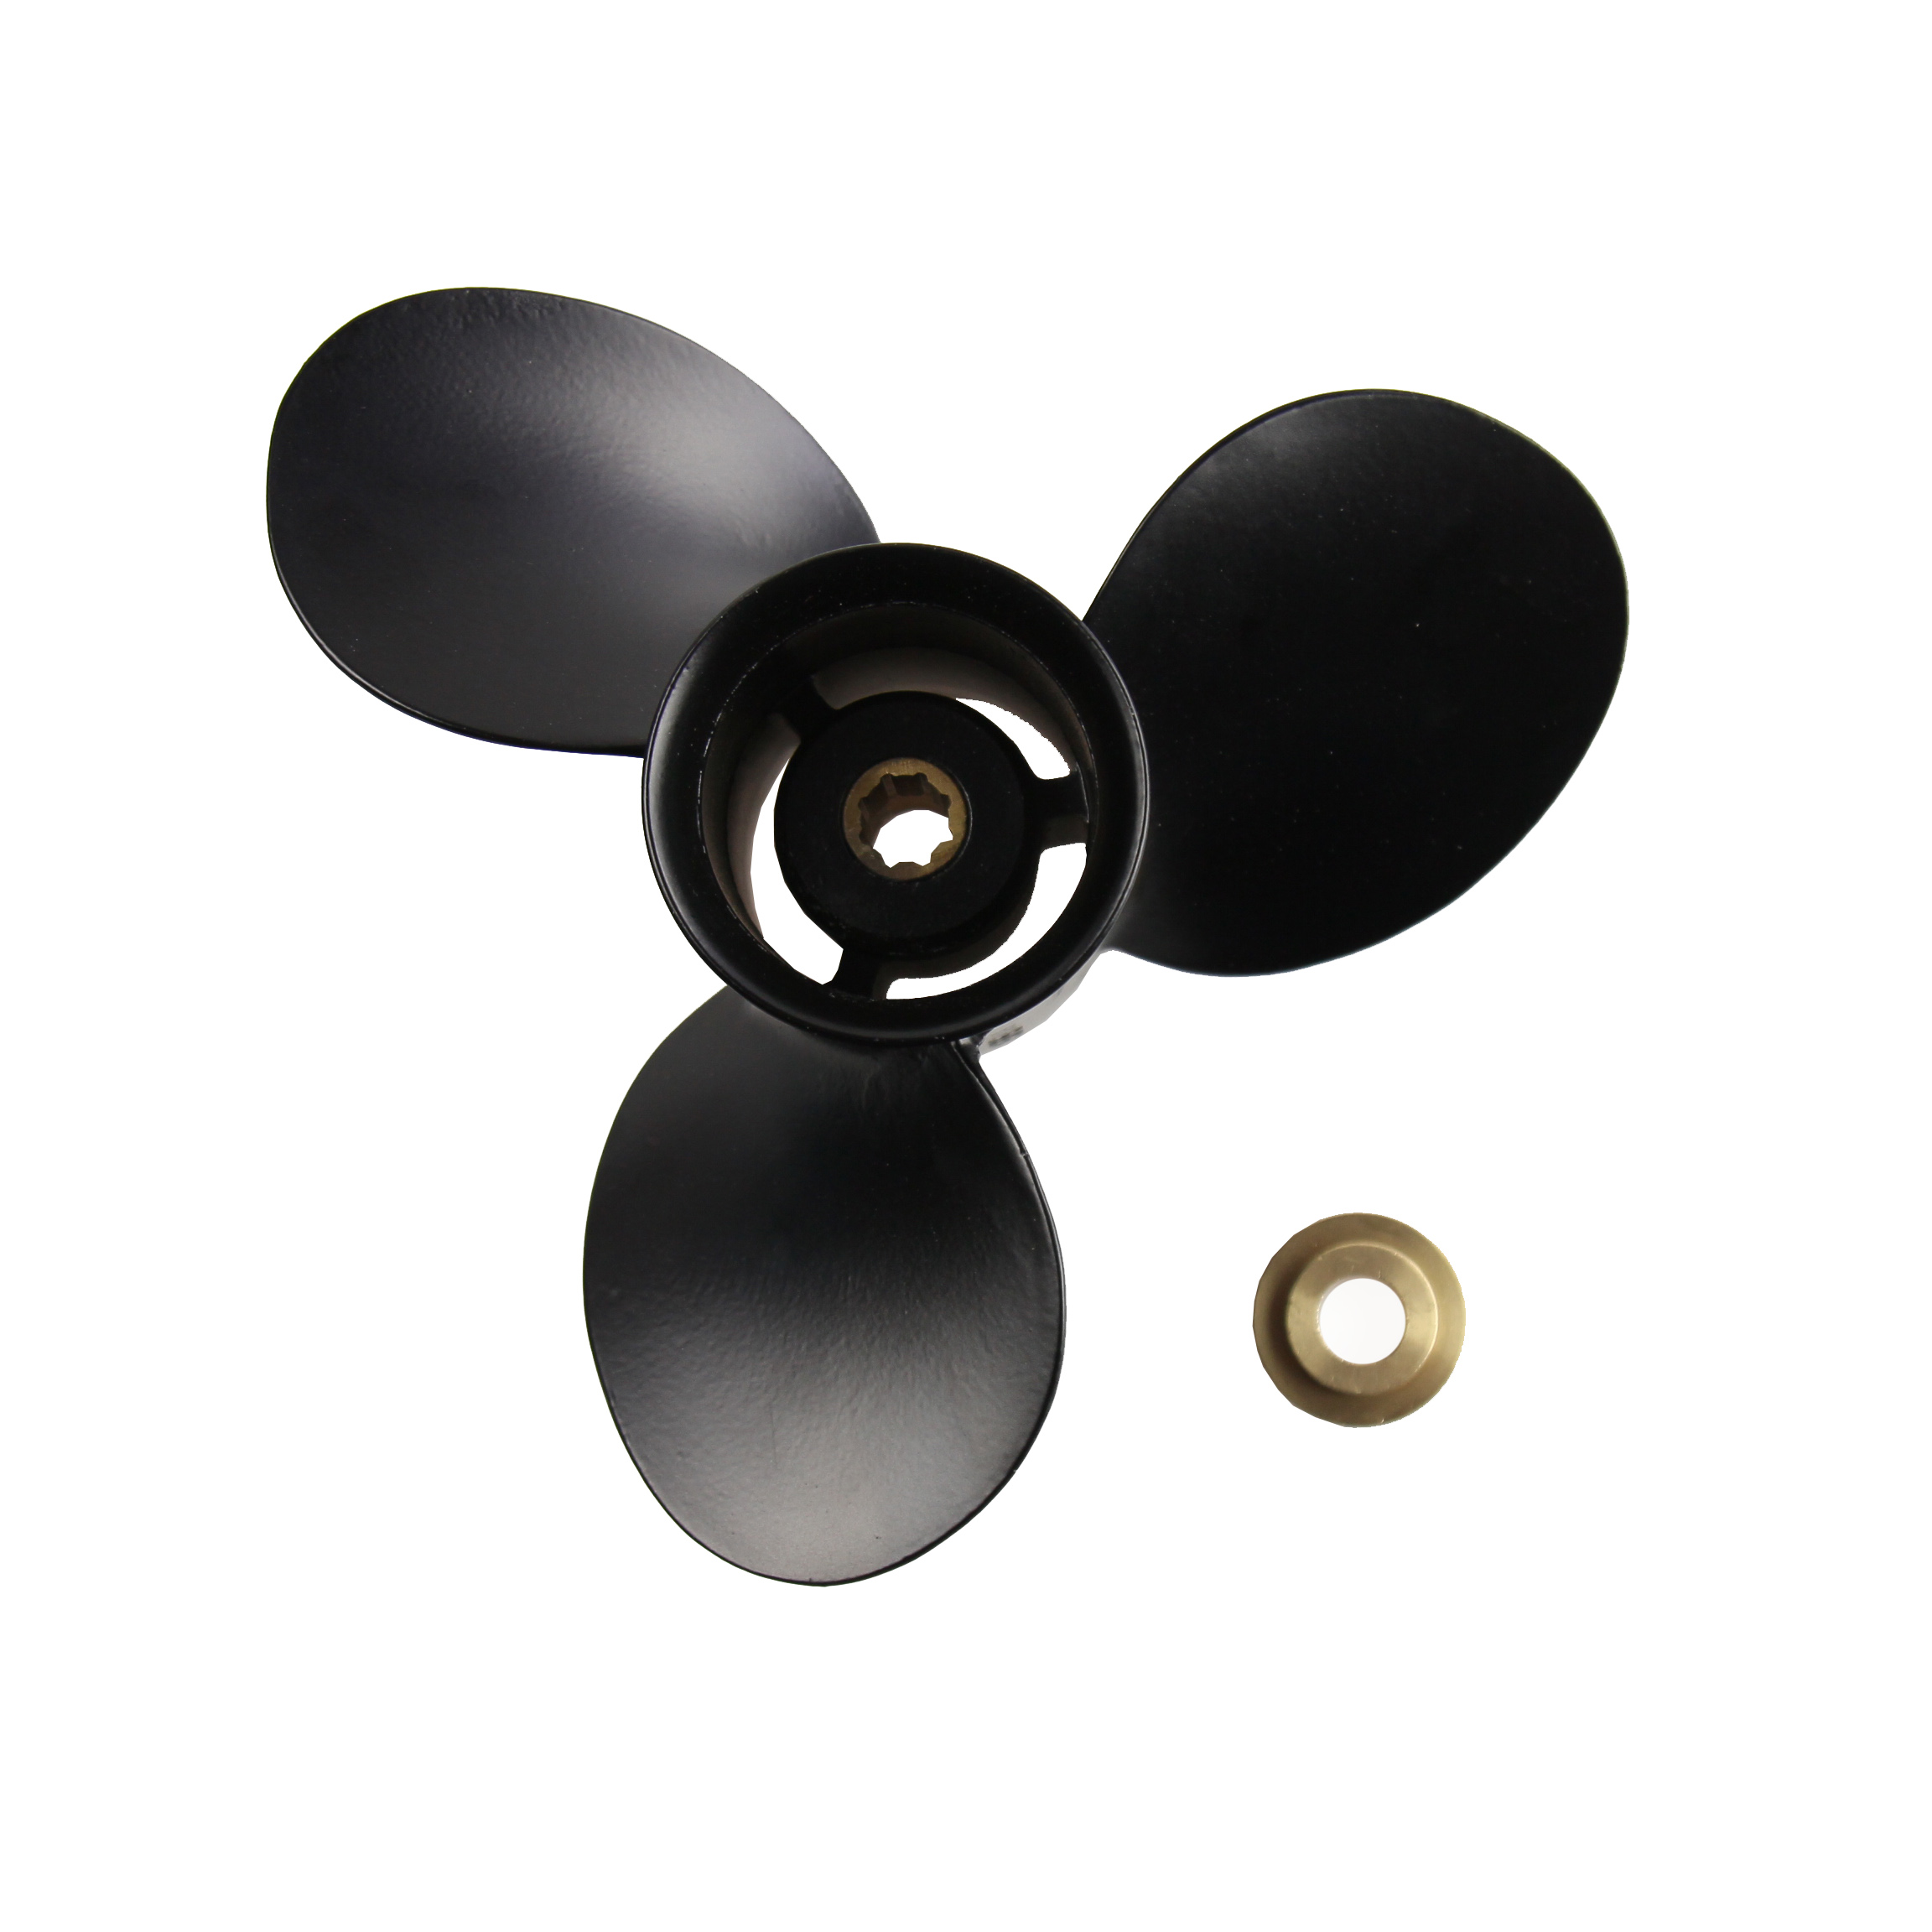 Aluminum Outboard Propeller 9X9 for Mercury 6-15HP 48-828156A12